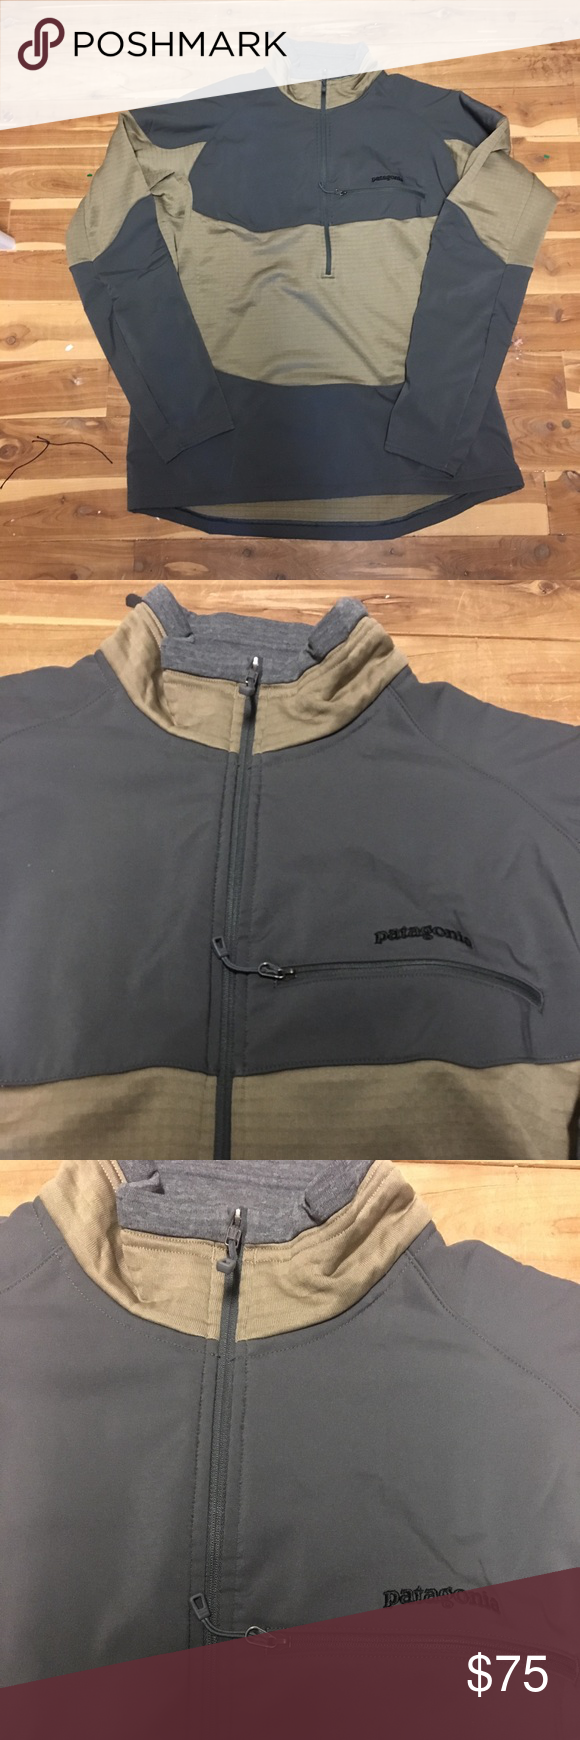 FINAL PRICE Patagonia Men's R1 Field Polartech